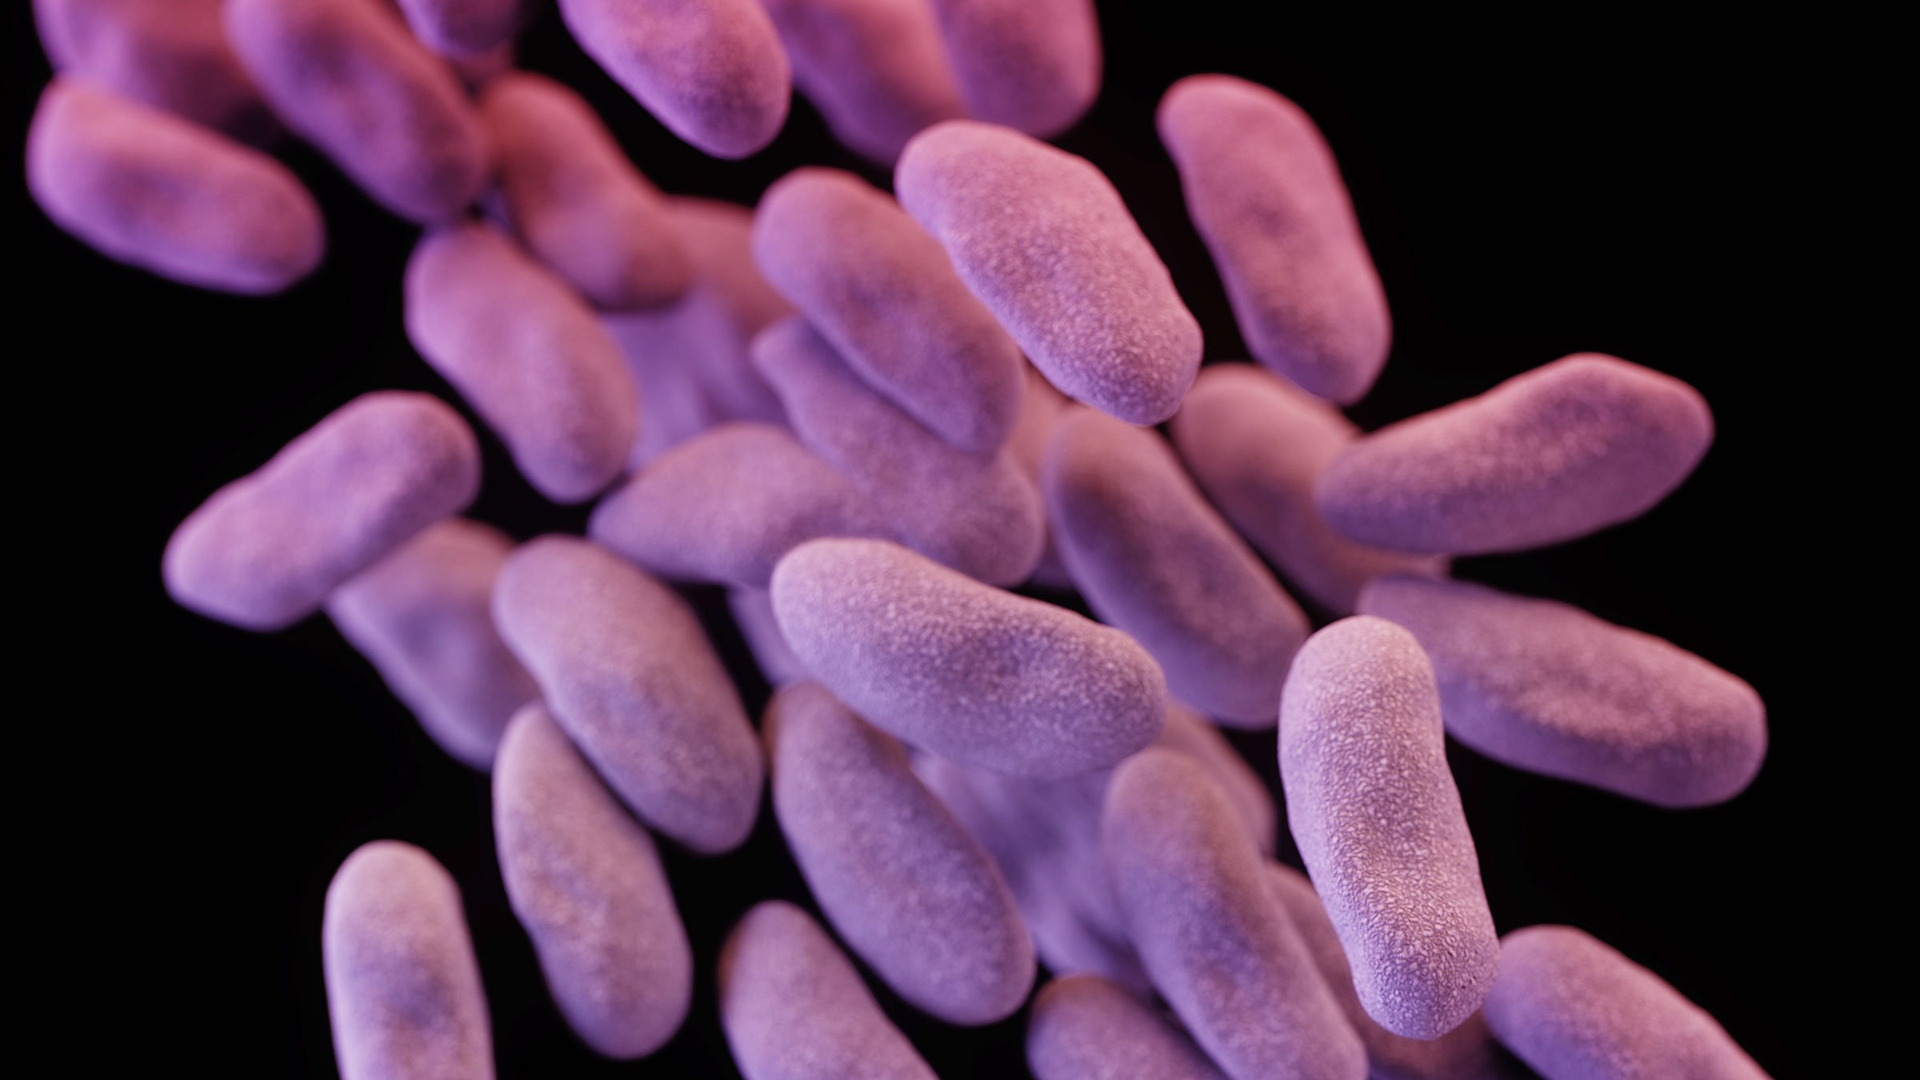 Drug-Resistant Superbugs Are a 'Fundamental Threat', WHO Says